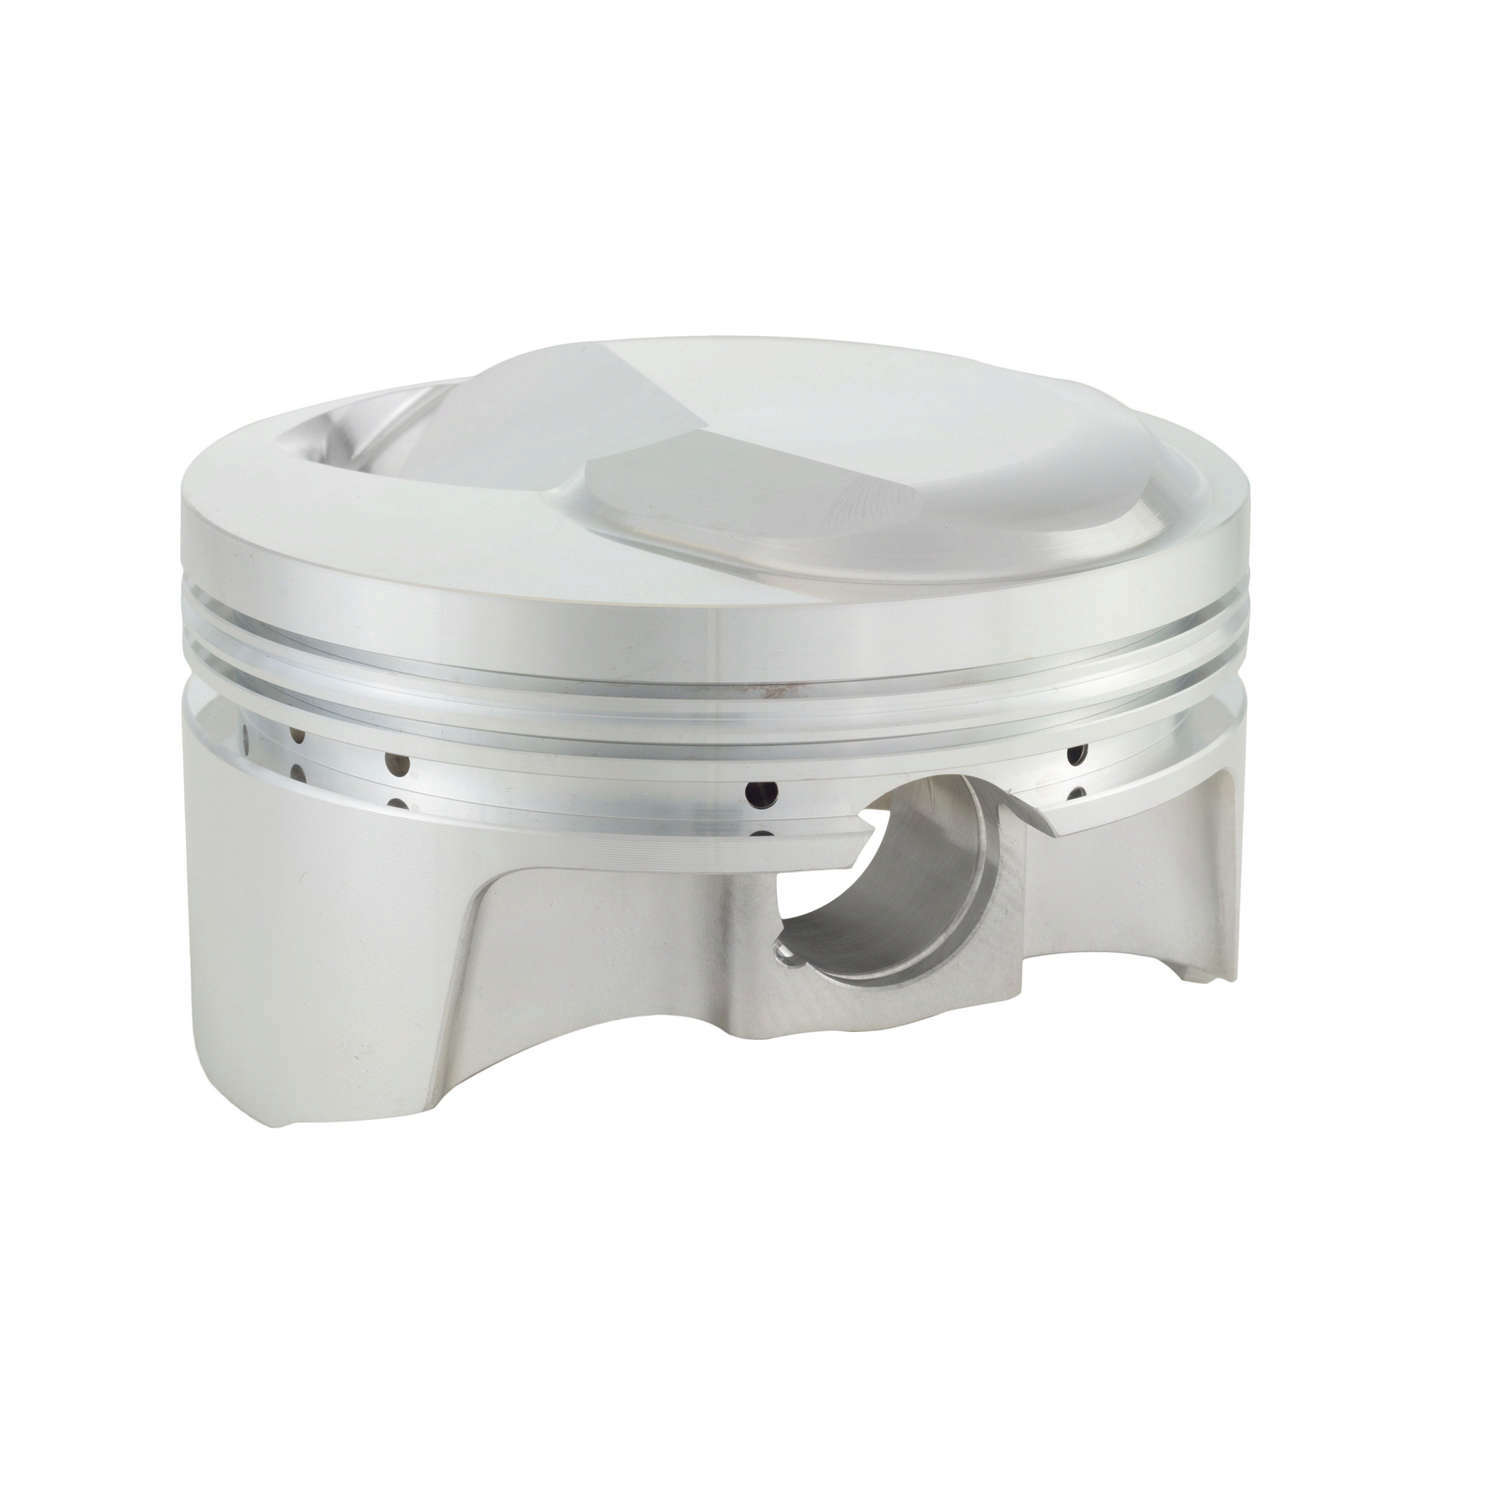 Bullet Pistons BBC5310-STD-8 Piston and Ring, Forged, 4.500 in Bore, 1/16 x 1/16 x 3/16 in Ring Grooves, Plus 24.9 cc, Big Block Chevy, Kit